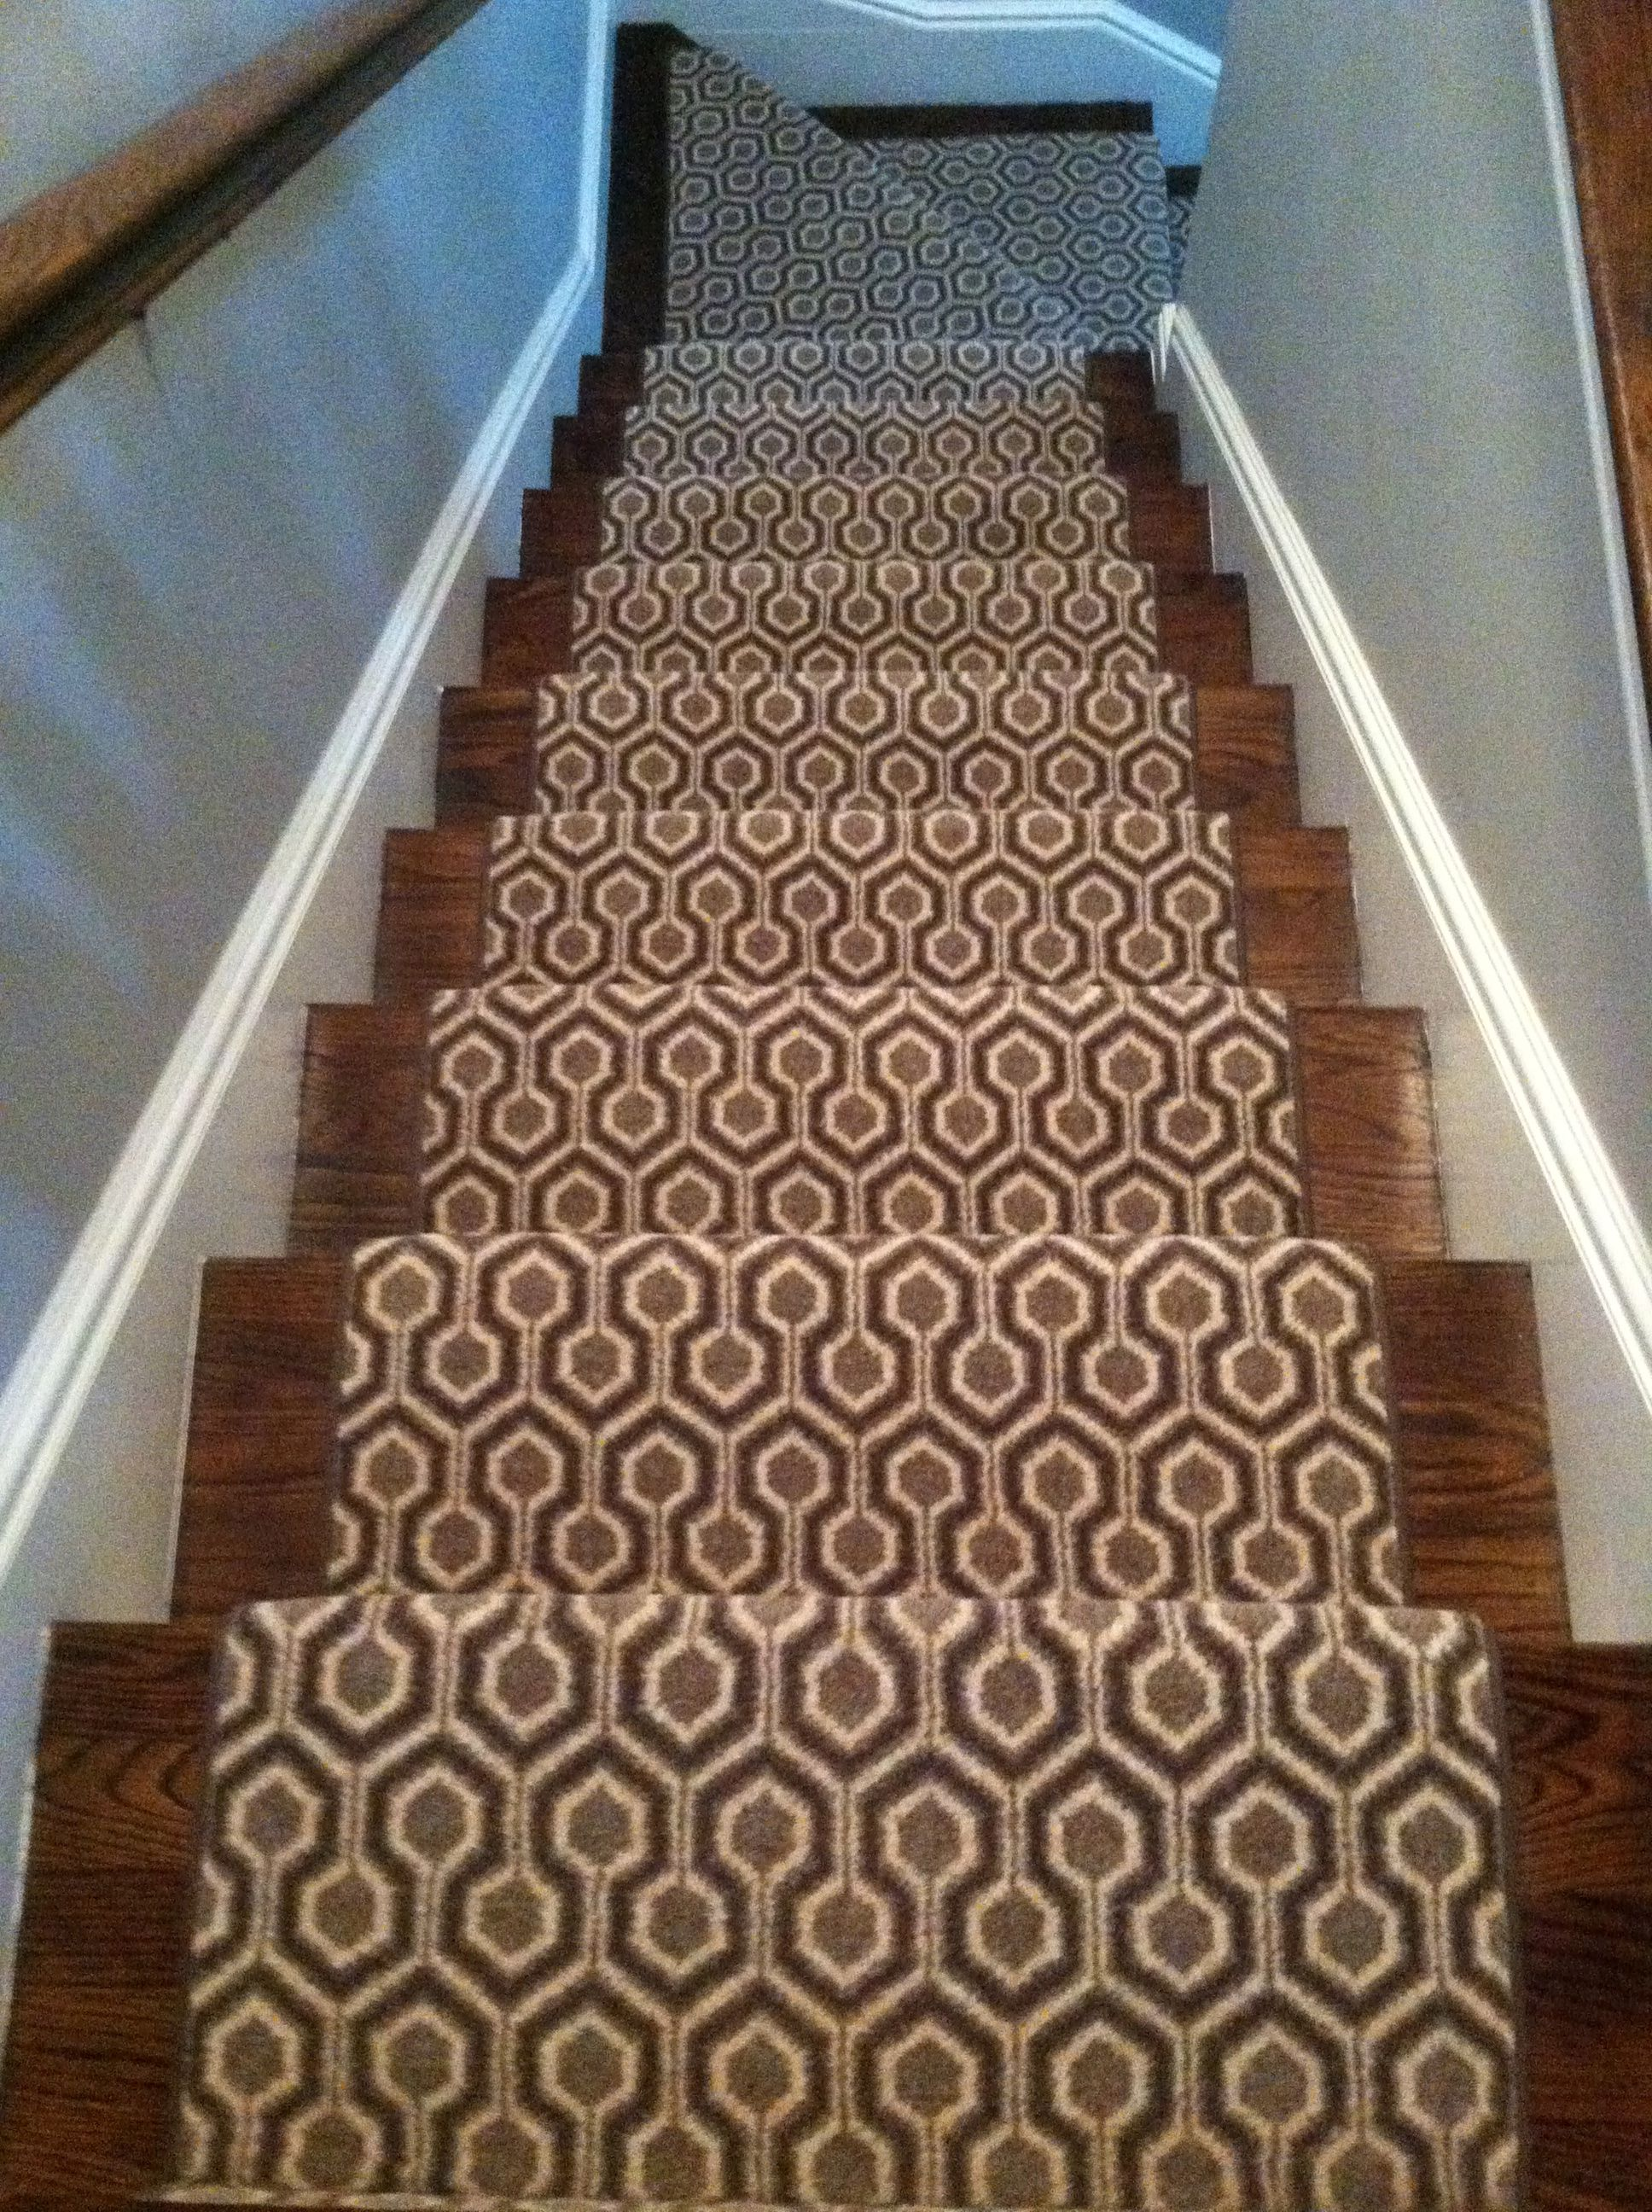 This Woven Wool Carpet Remnant Was Fabricated Into A Custom Stair Runner.